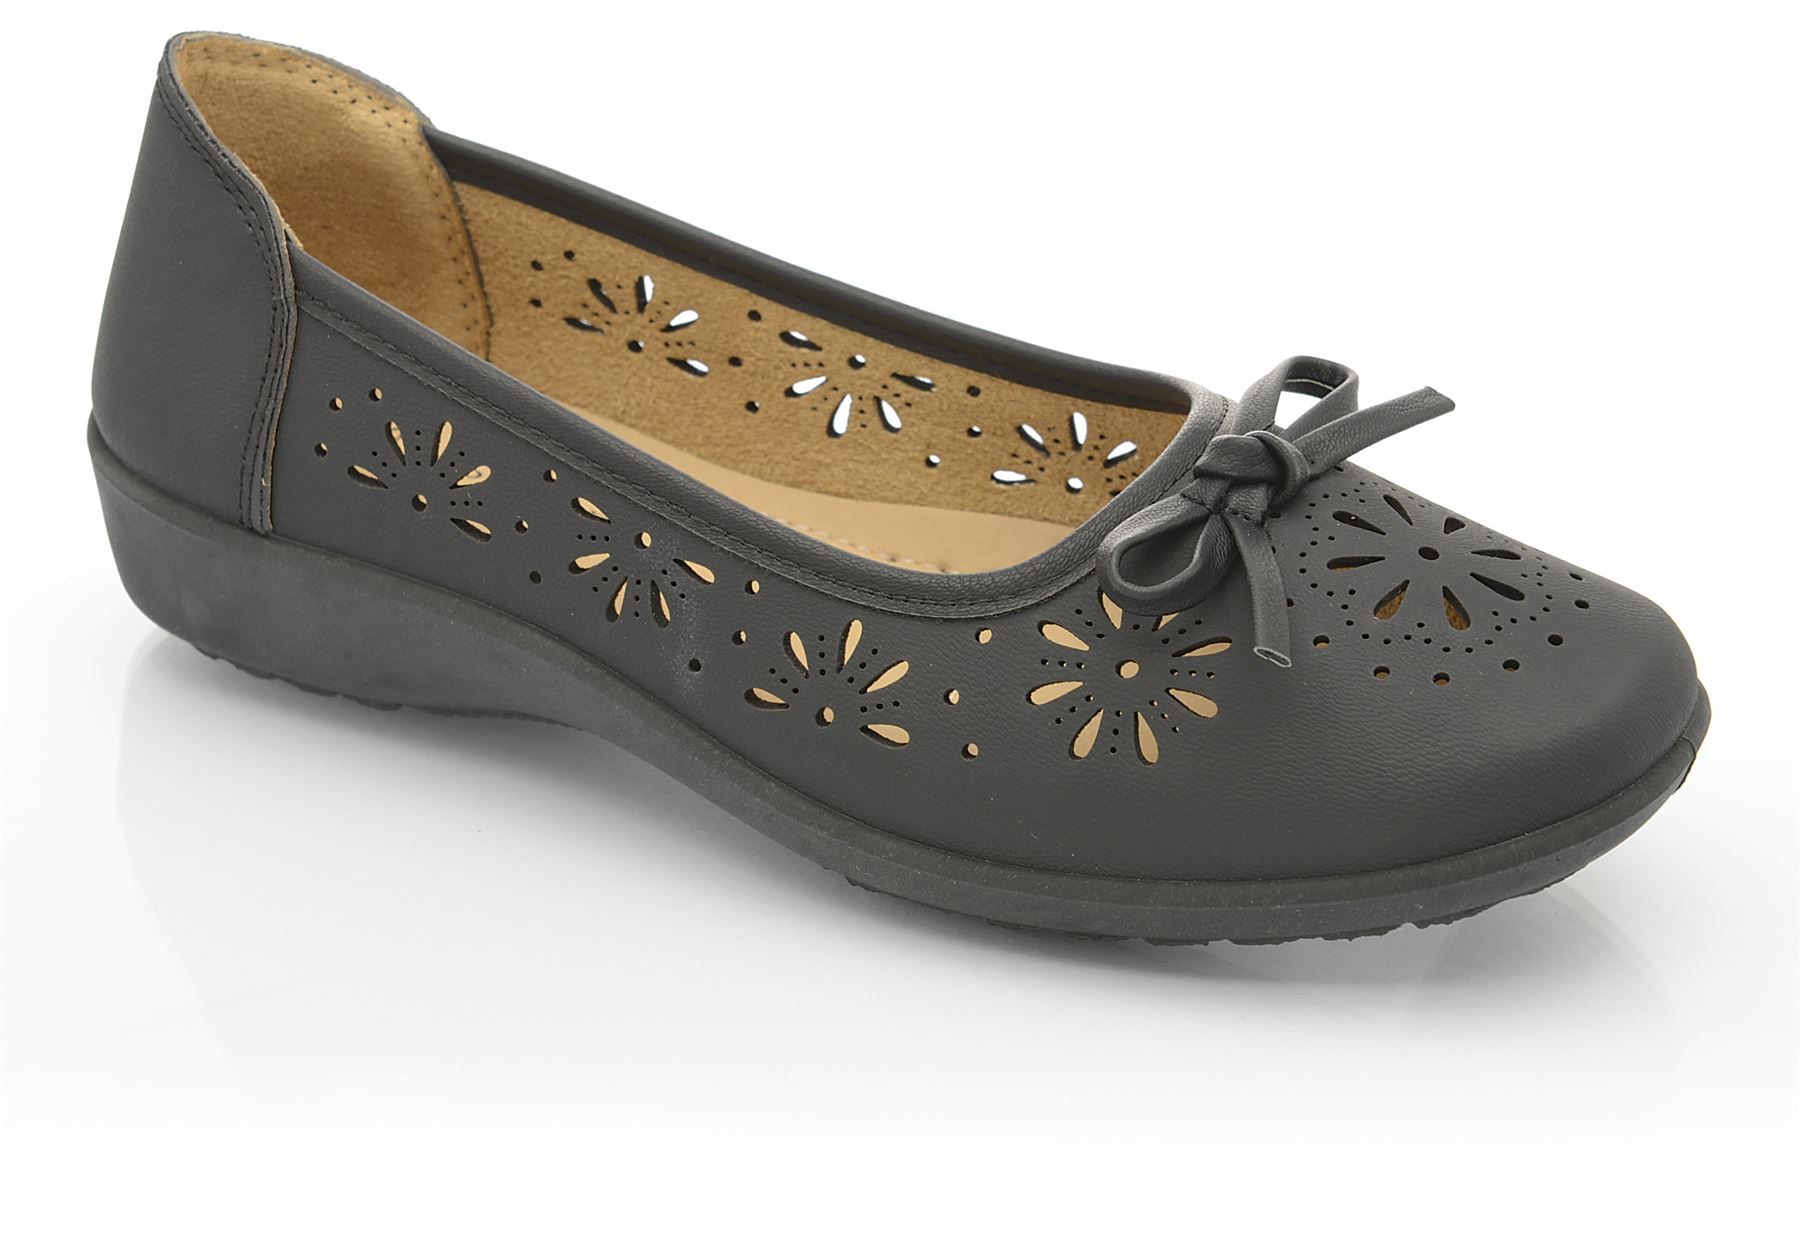 Women's Slip-ons: Free Shipping on orders over $45 at trueiupnbp.gq - Your Online Women's Slip-ons Store! Clarks Women's Everlay Iris Shoe Black Sheep Full Grain Leather. 12 Reviews. SALE. Quick View. Sale $ 24 HOUR COMFORT Bristol Women Extra Wide Width Trendy Slip On Shoes. SALE. Quick View. Sale $